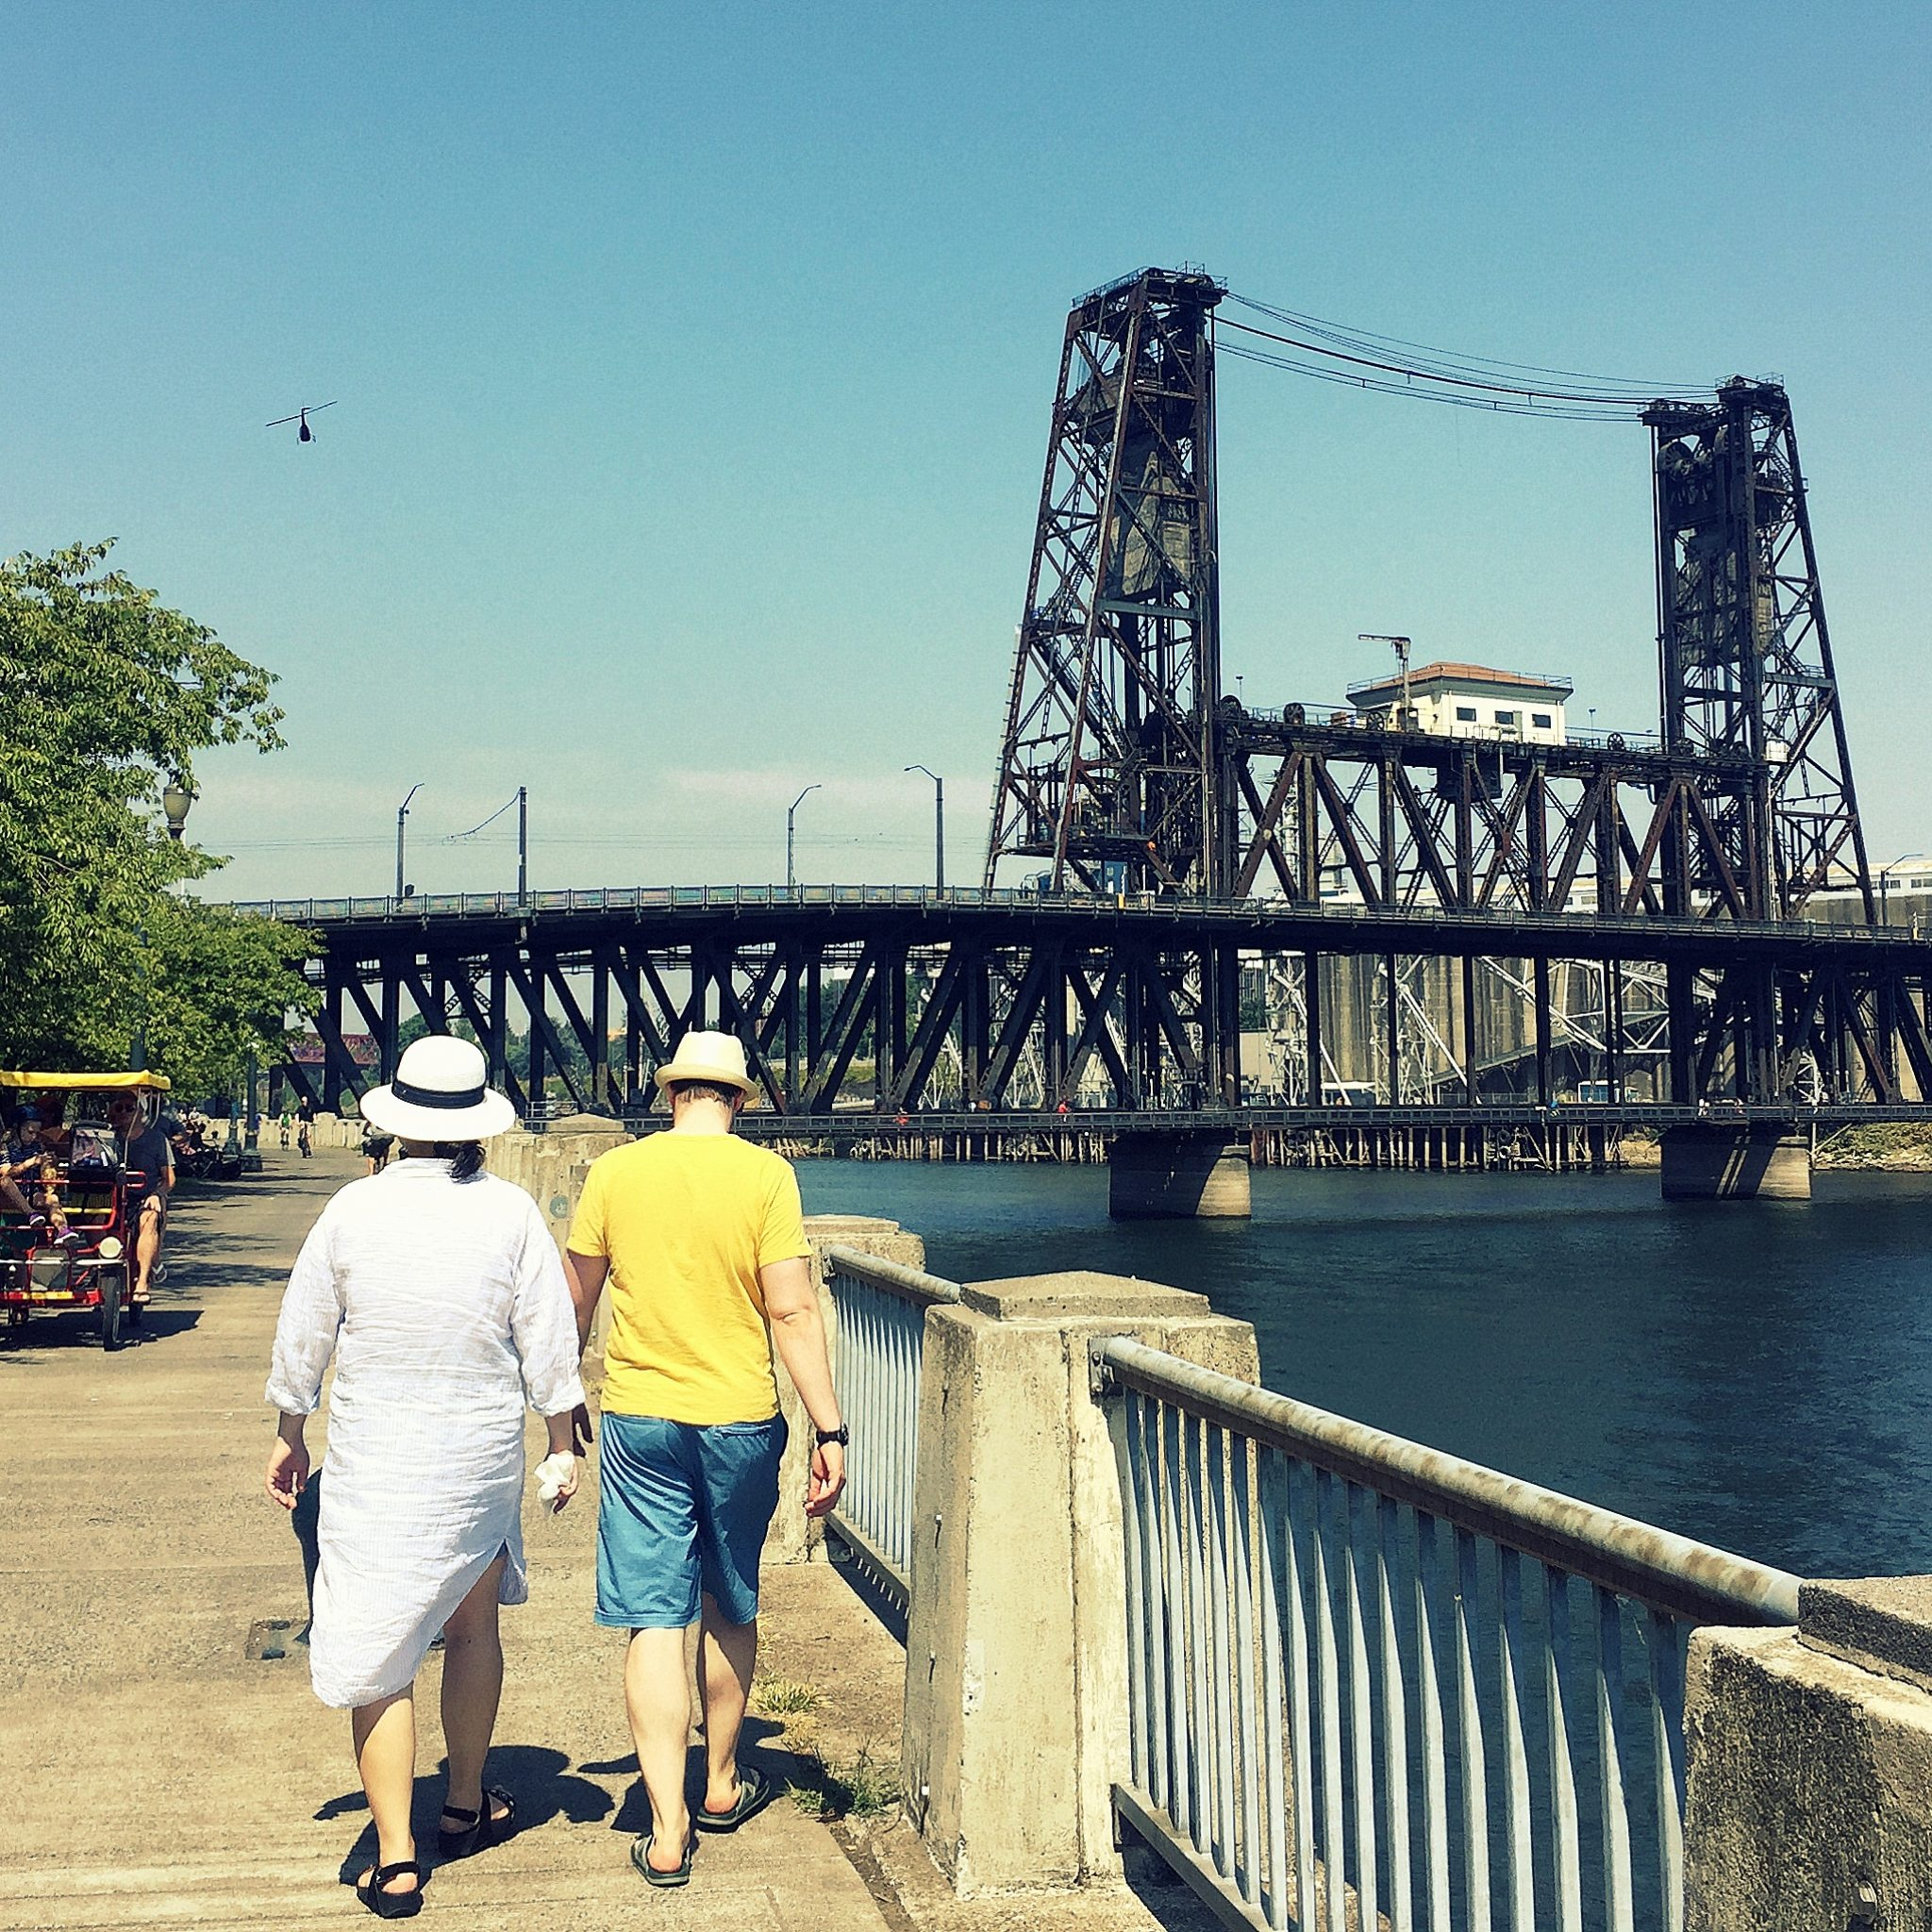 Walk or cycle down the esplanade along Willamette River to appreciate the impressive bridges.